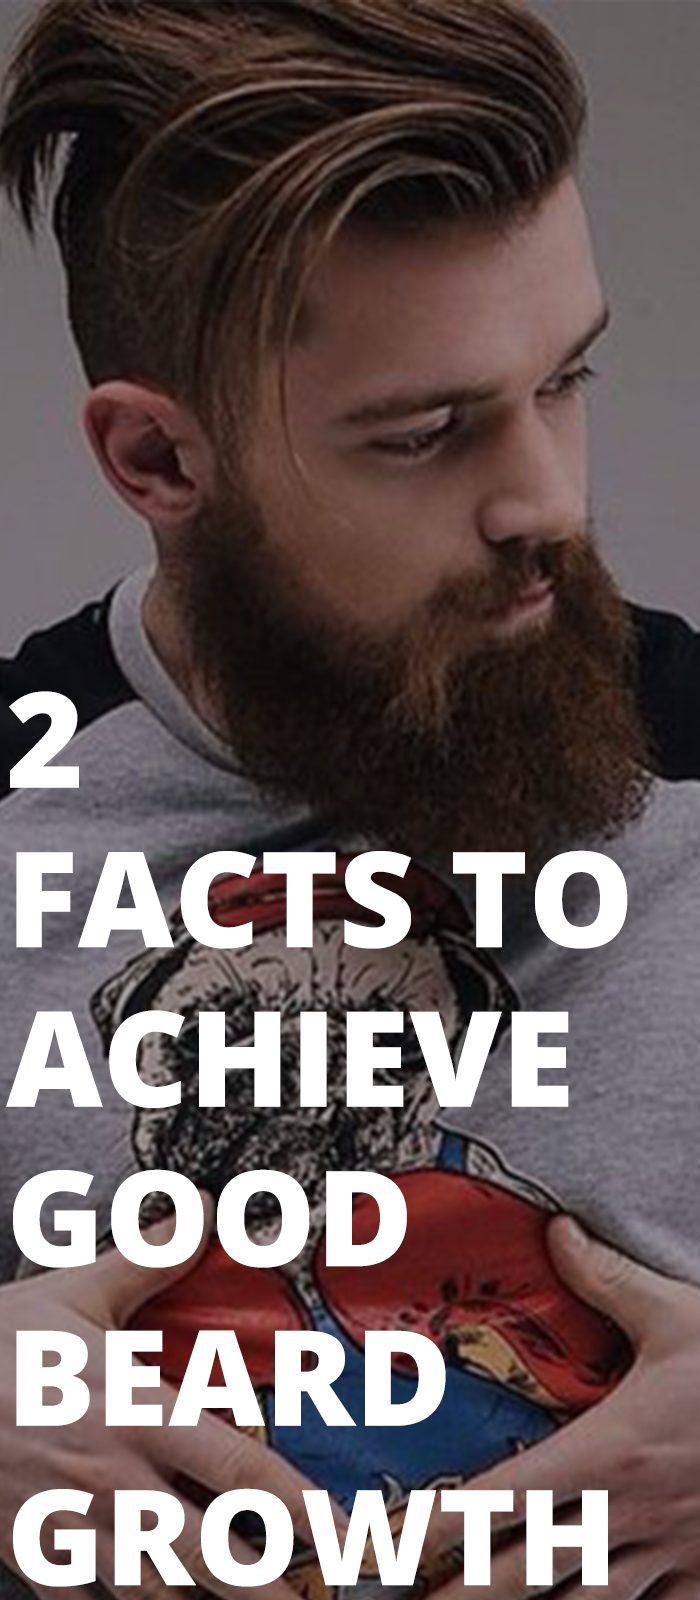 2 Facts To Achieve Good Beard Growth